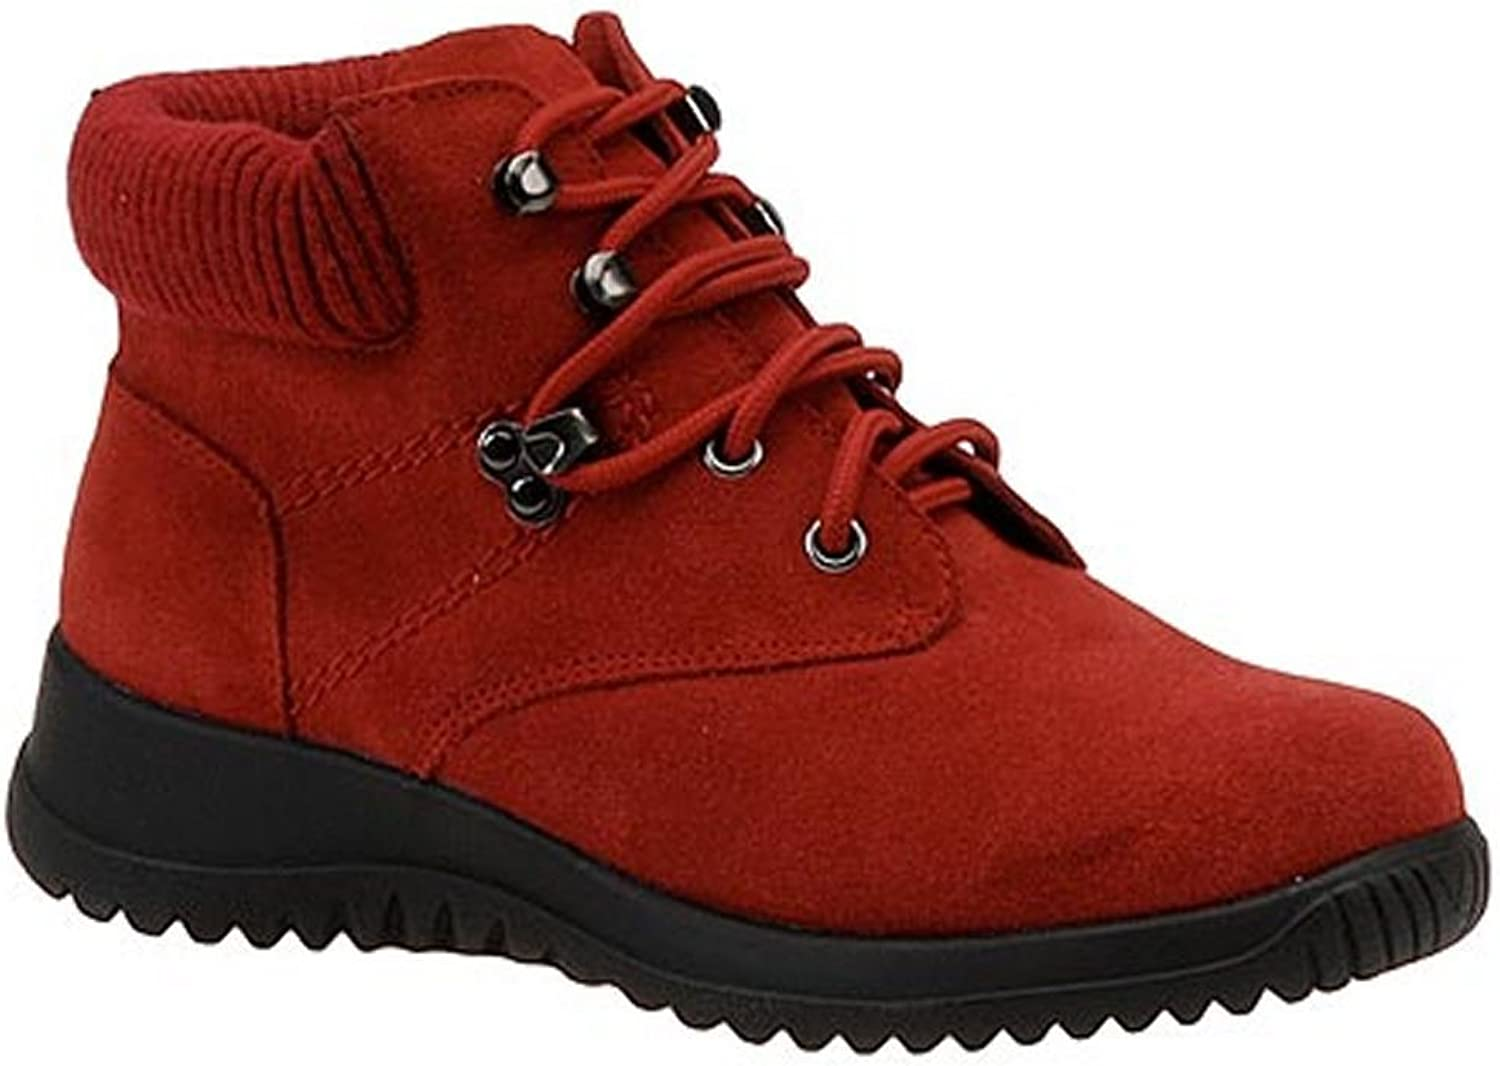 Wanderlust Womens Toe Warmers Boston Leather Closed Toe Ankle Fashion Boots